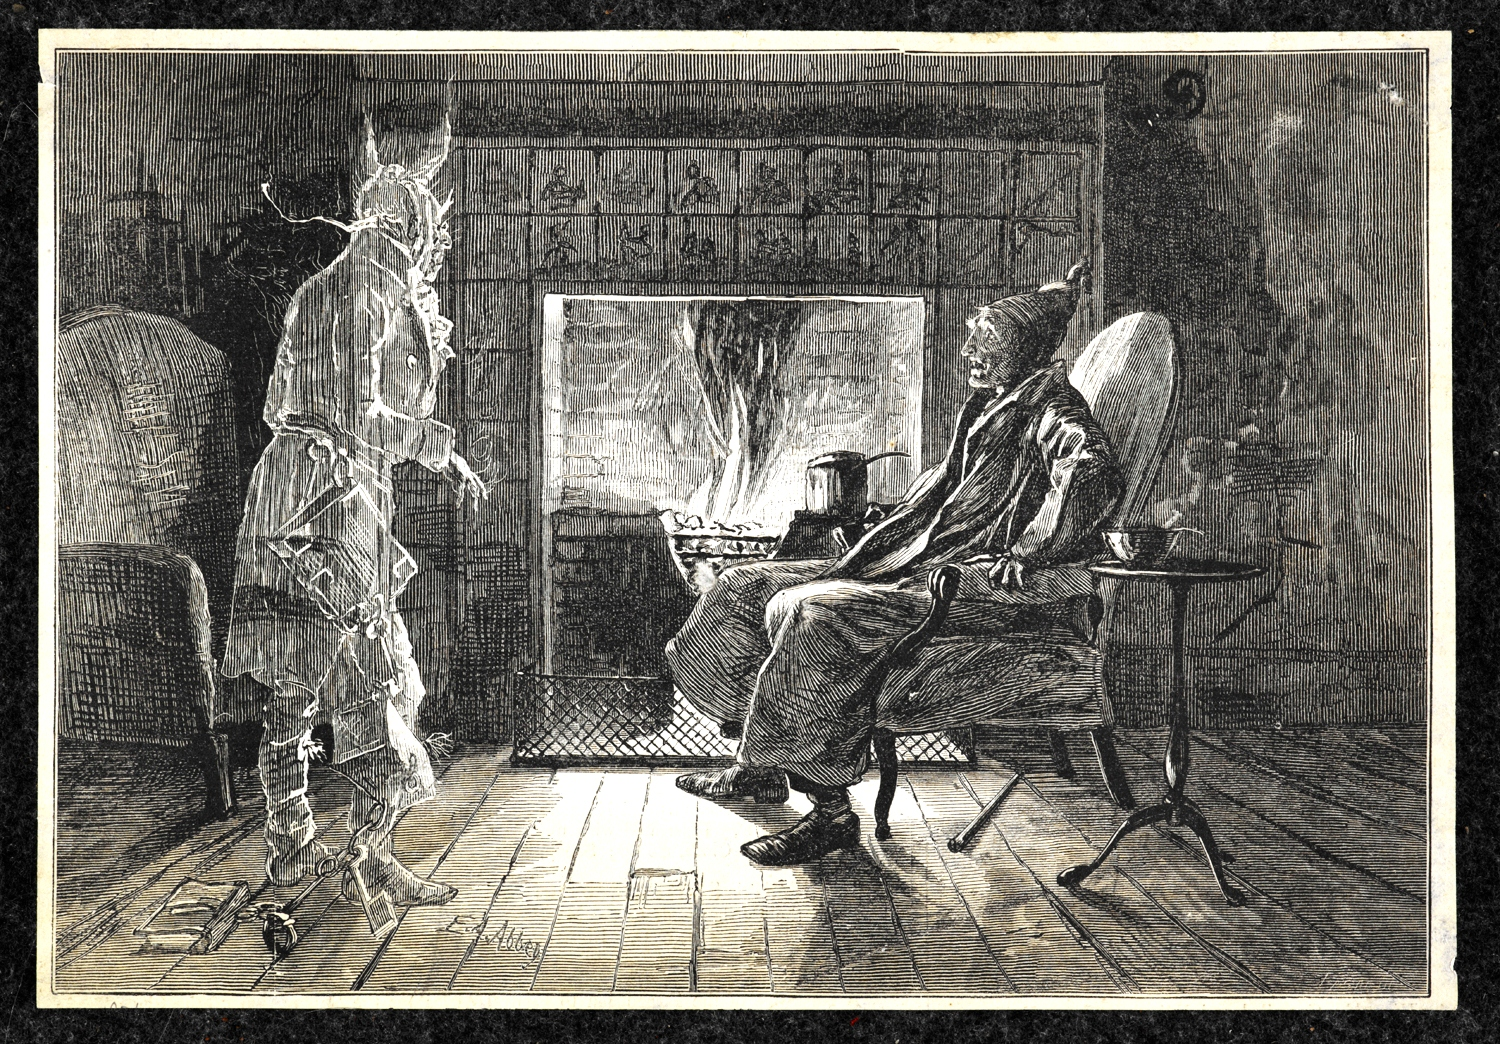 A Hankering after Ghosts, Dickens and the Supernatural, British Library | The Arts Desk